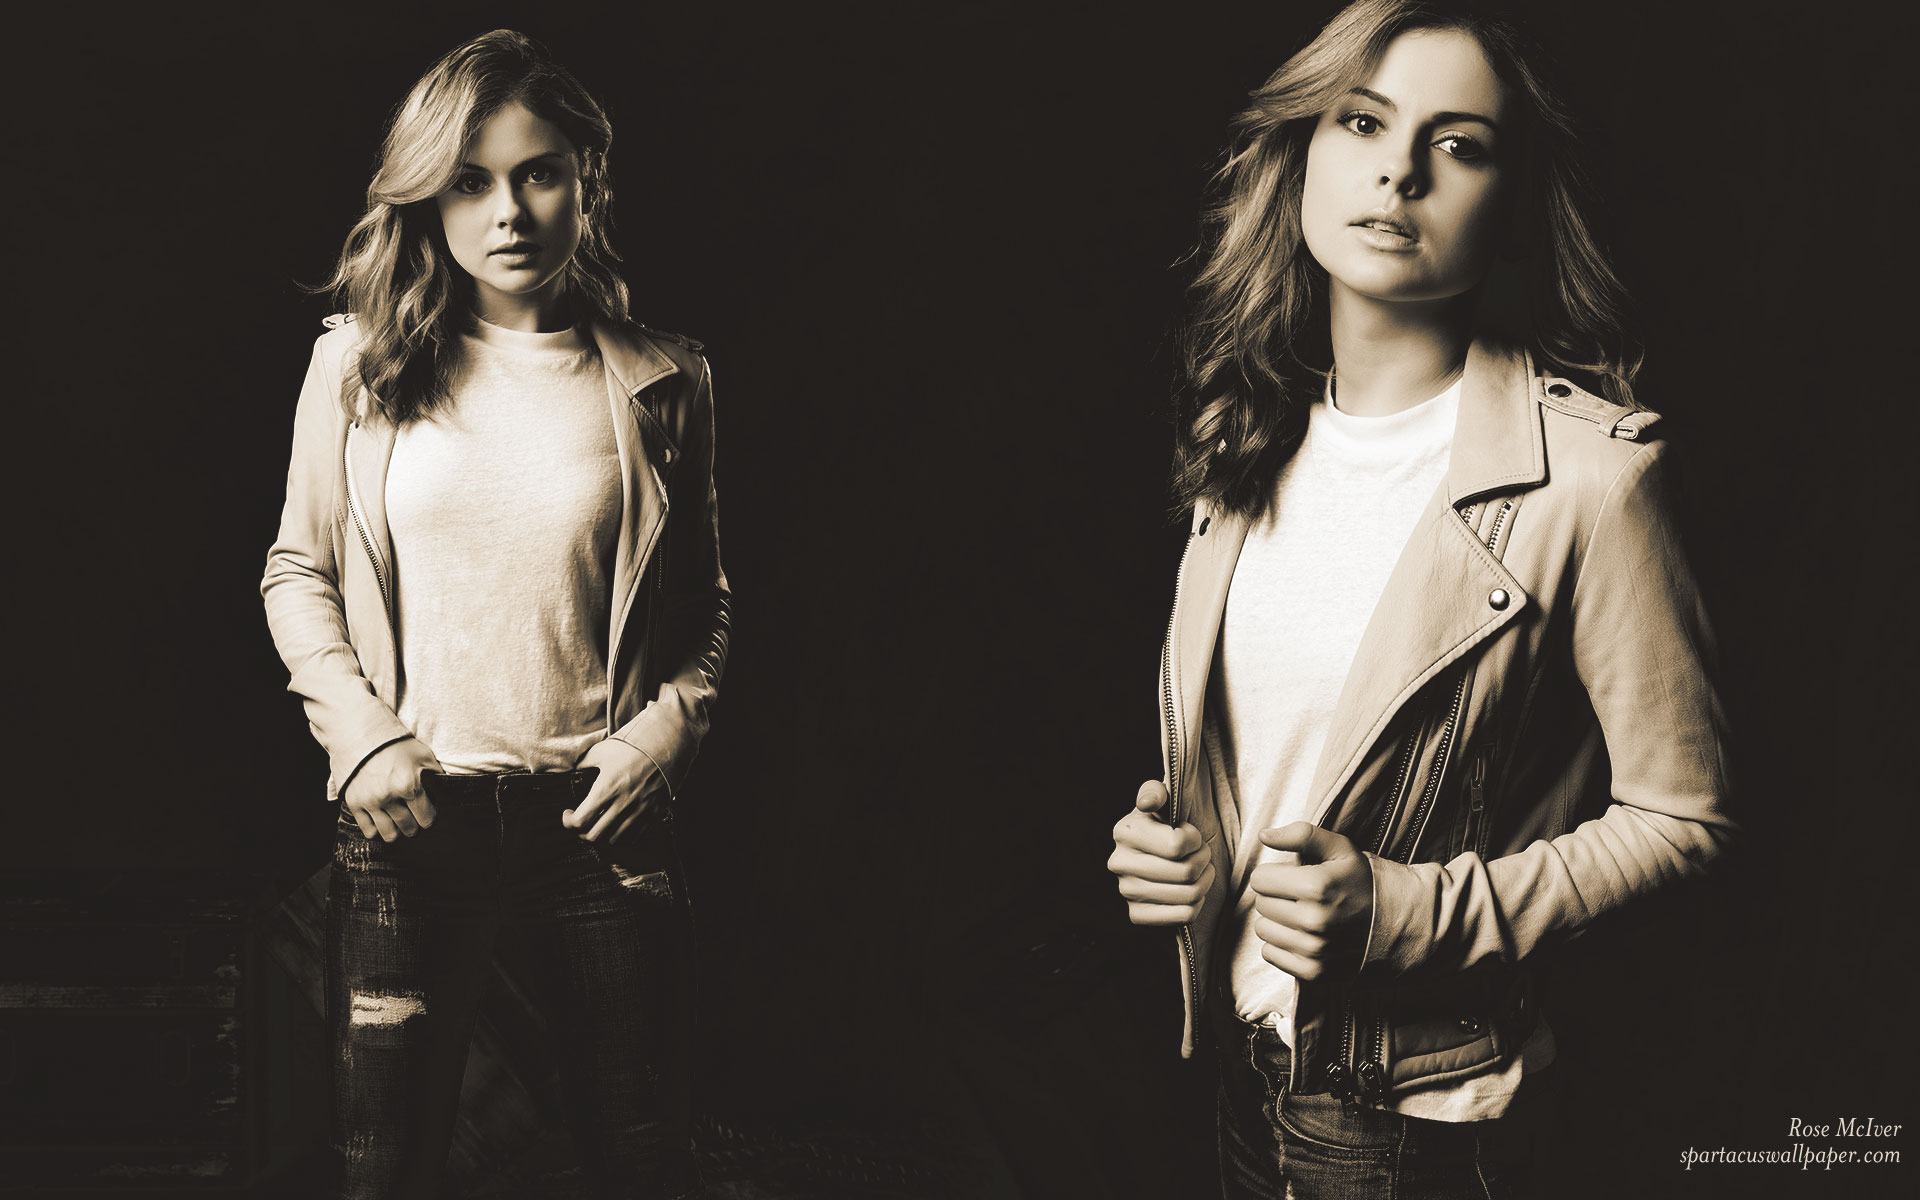 1920x1200 - Rose McIver Wallpapers 1